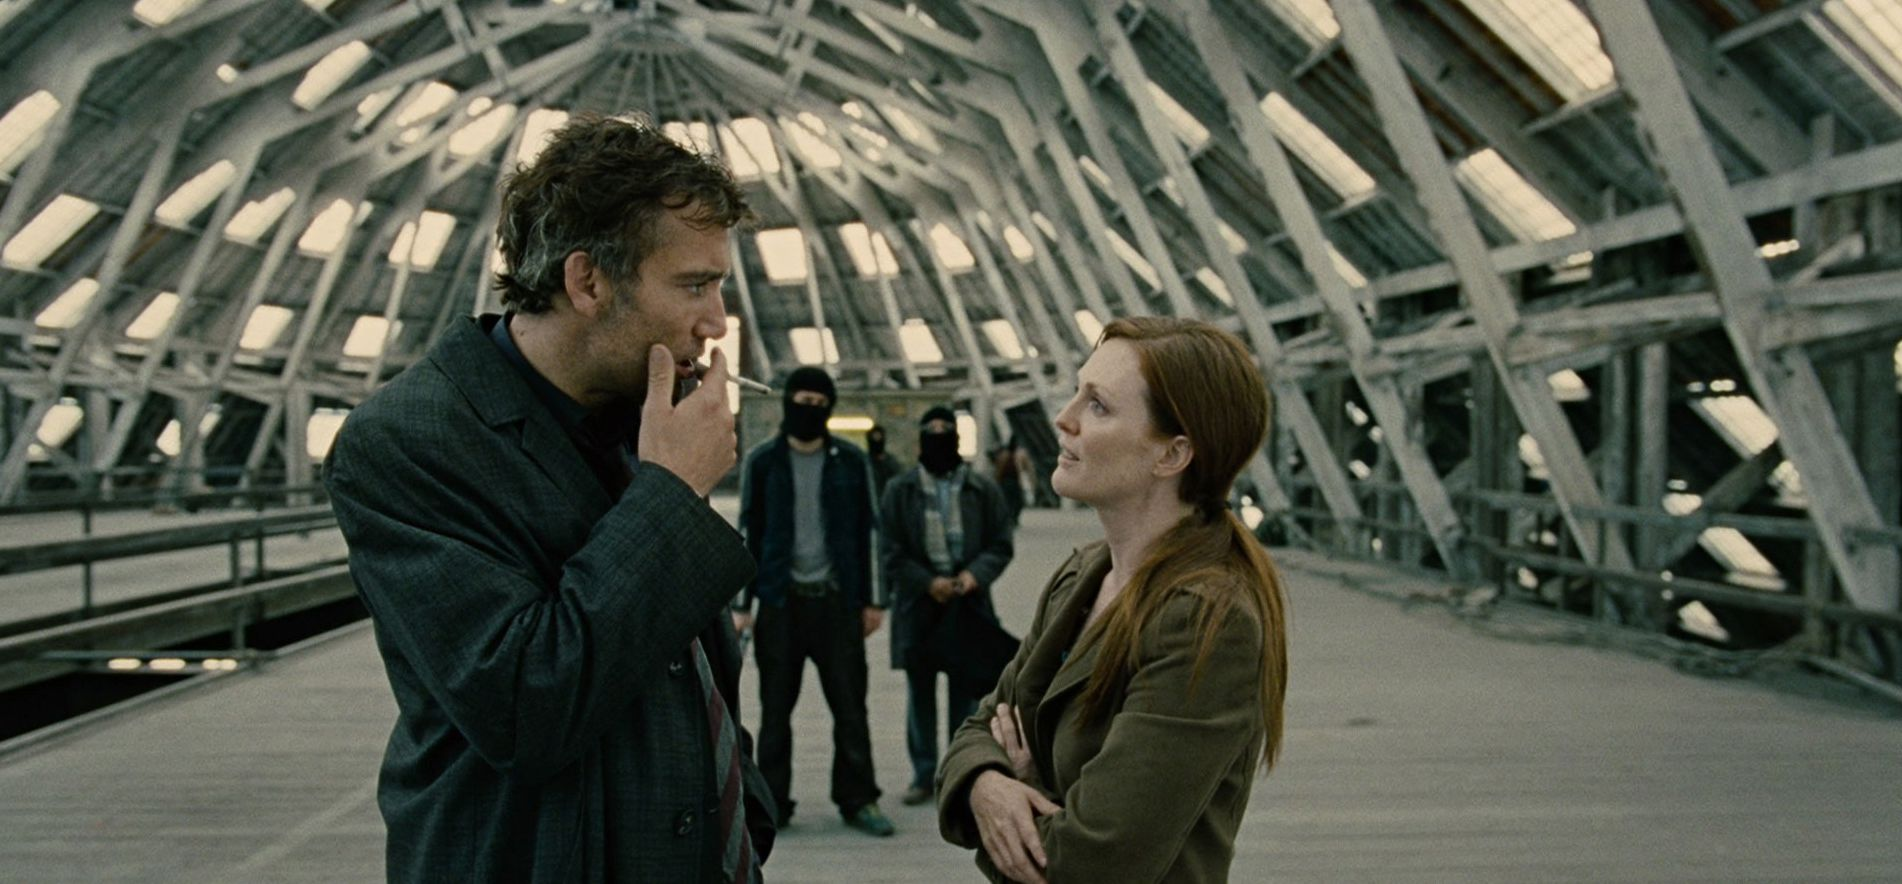 an interpretation of alfonso cuarons adaptation of children of men Cuarón's feature children of men, an adaptation of the p d james novel starring clive owen, julianne moore and michael caine, received wide critical acclaim, including three academy award nominations cuarón himself received two nominations for his work on the film in best film editing.